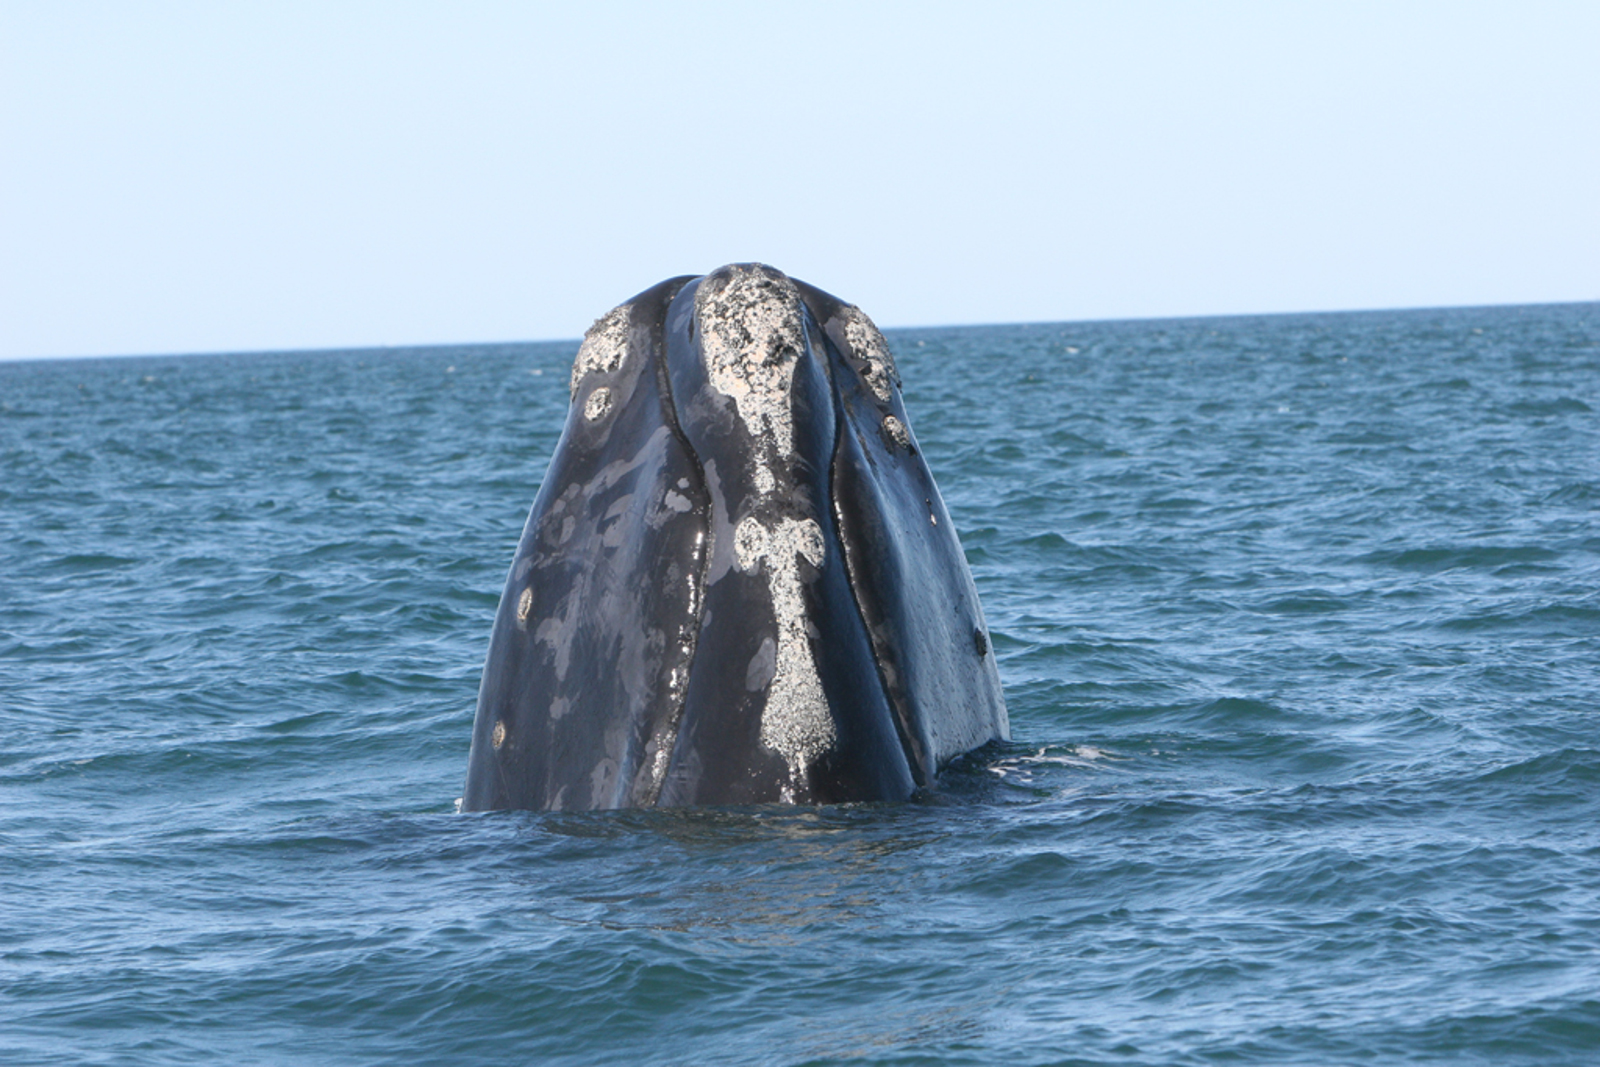 Endangered Right Whales Return to the East Coast! Here's How We Plan to Keep Them Safe